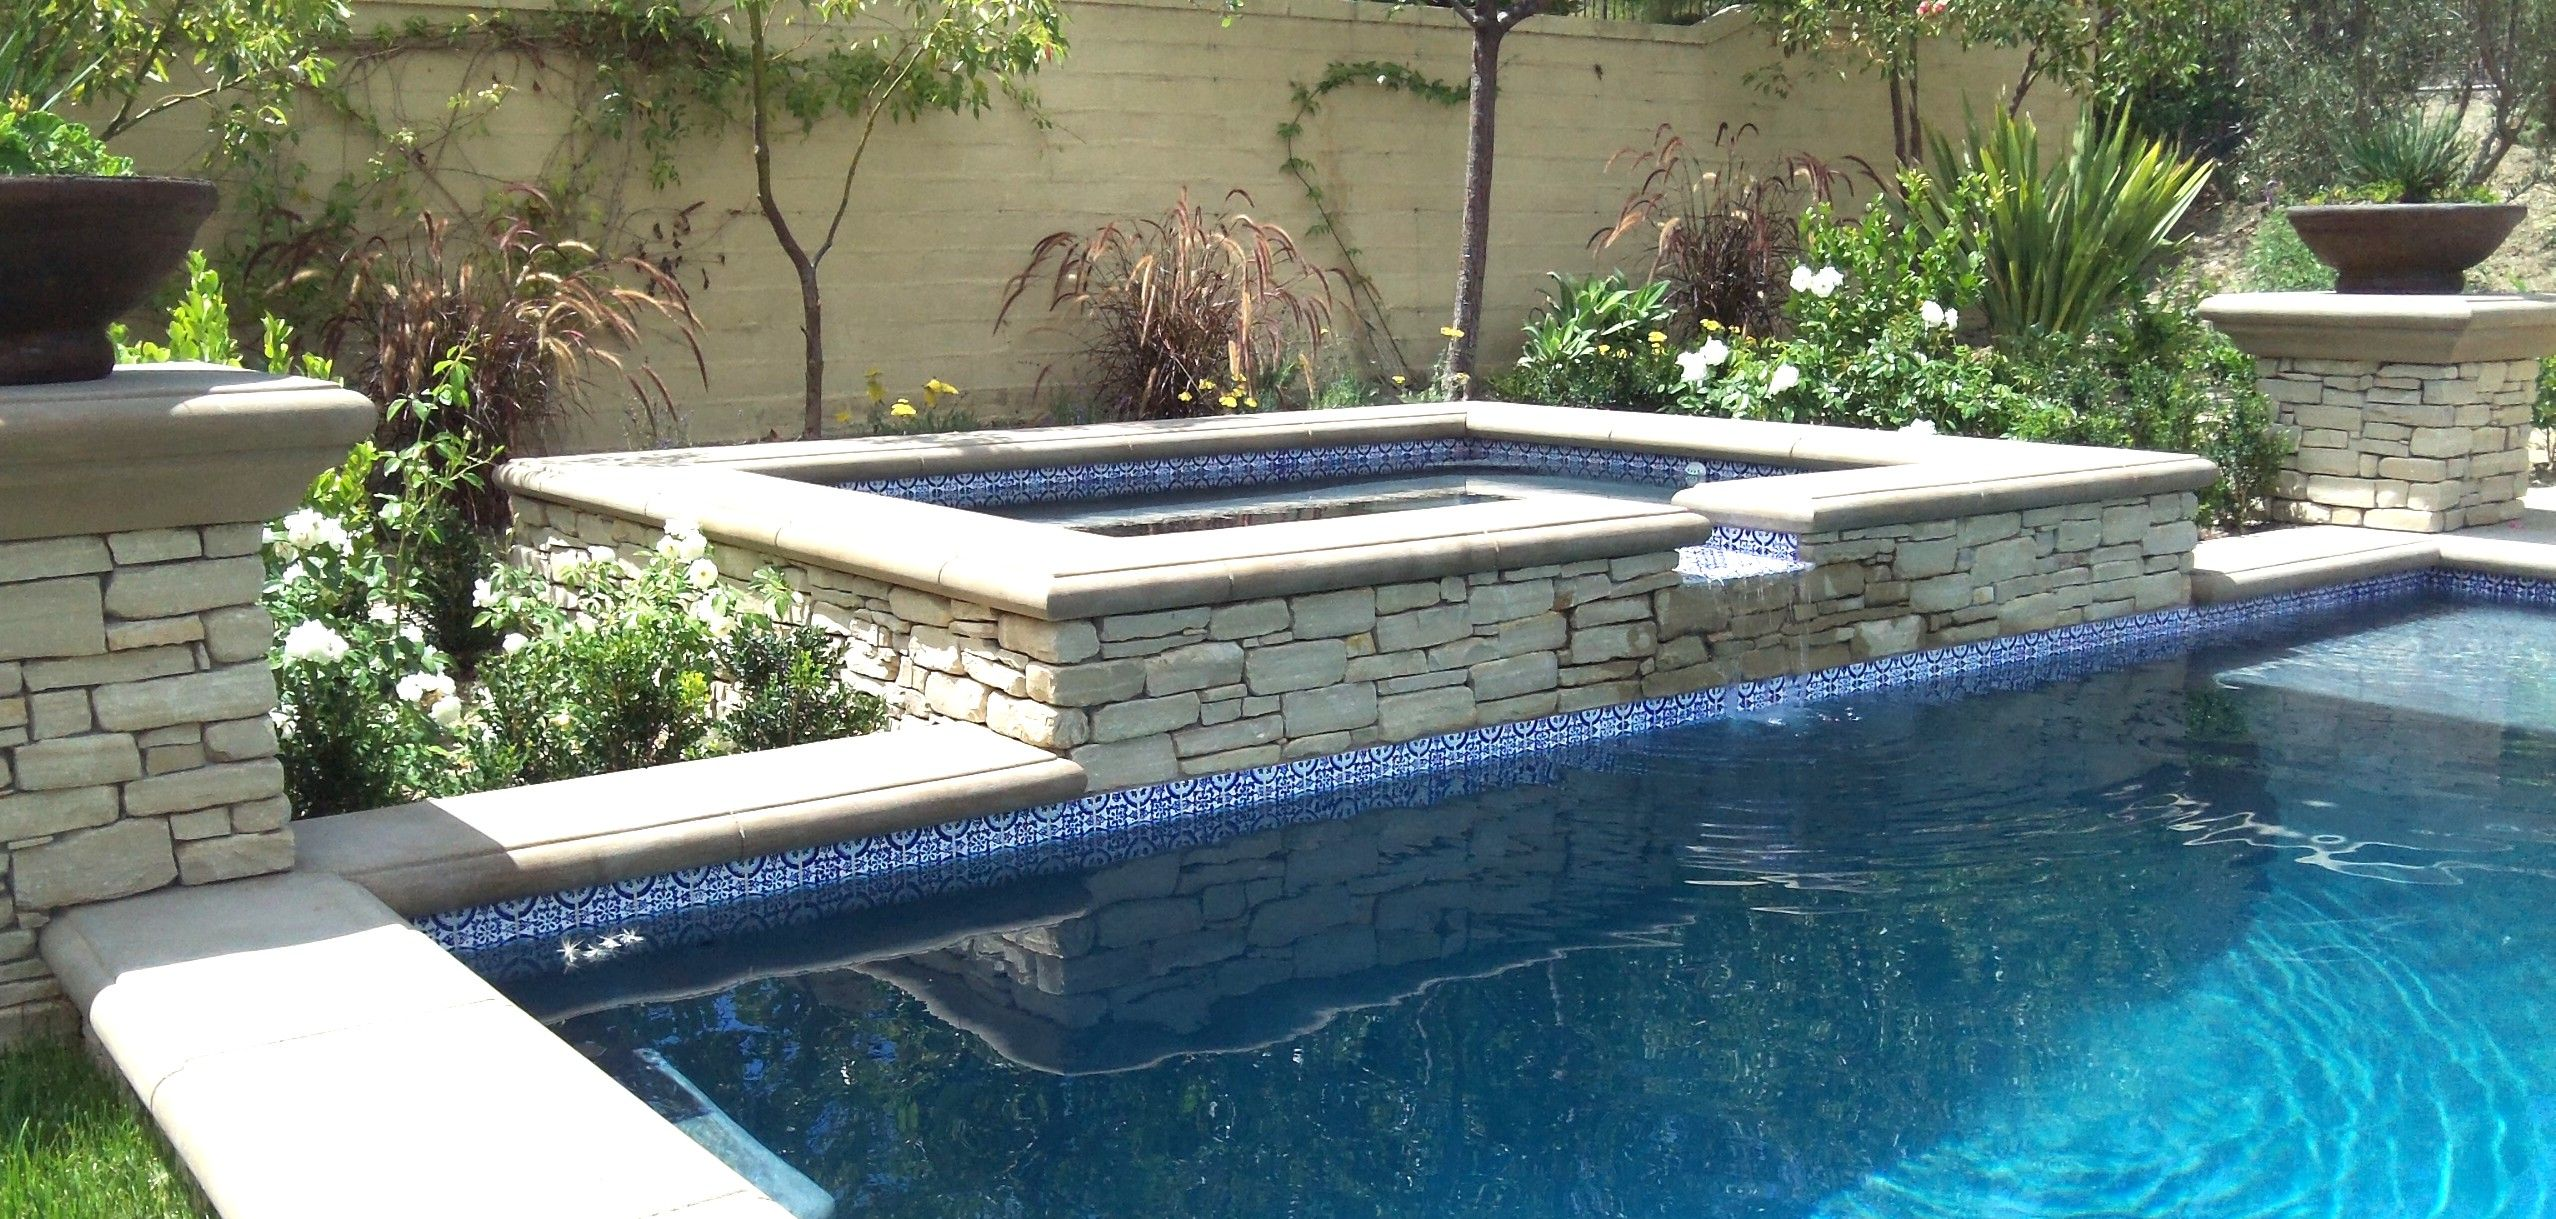 Pool Tile And Coping Ideas find this pin and more on pool ideas Pool Tile Designs Pool Water Fountain Design Ideas Small Swimming Pool Fountain Design